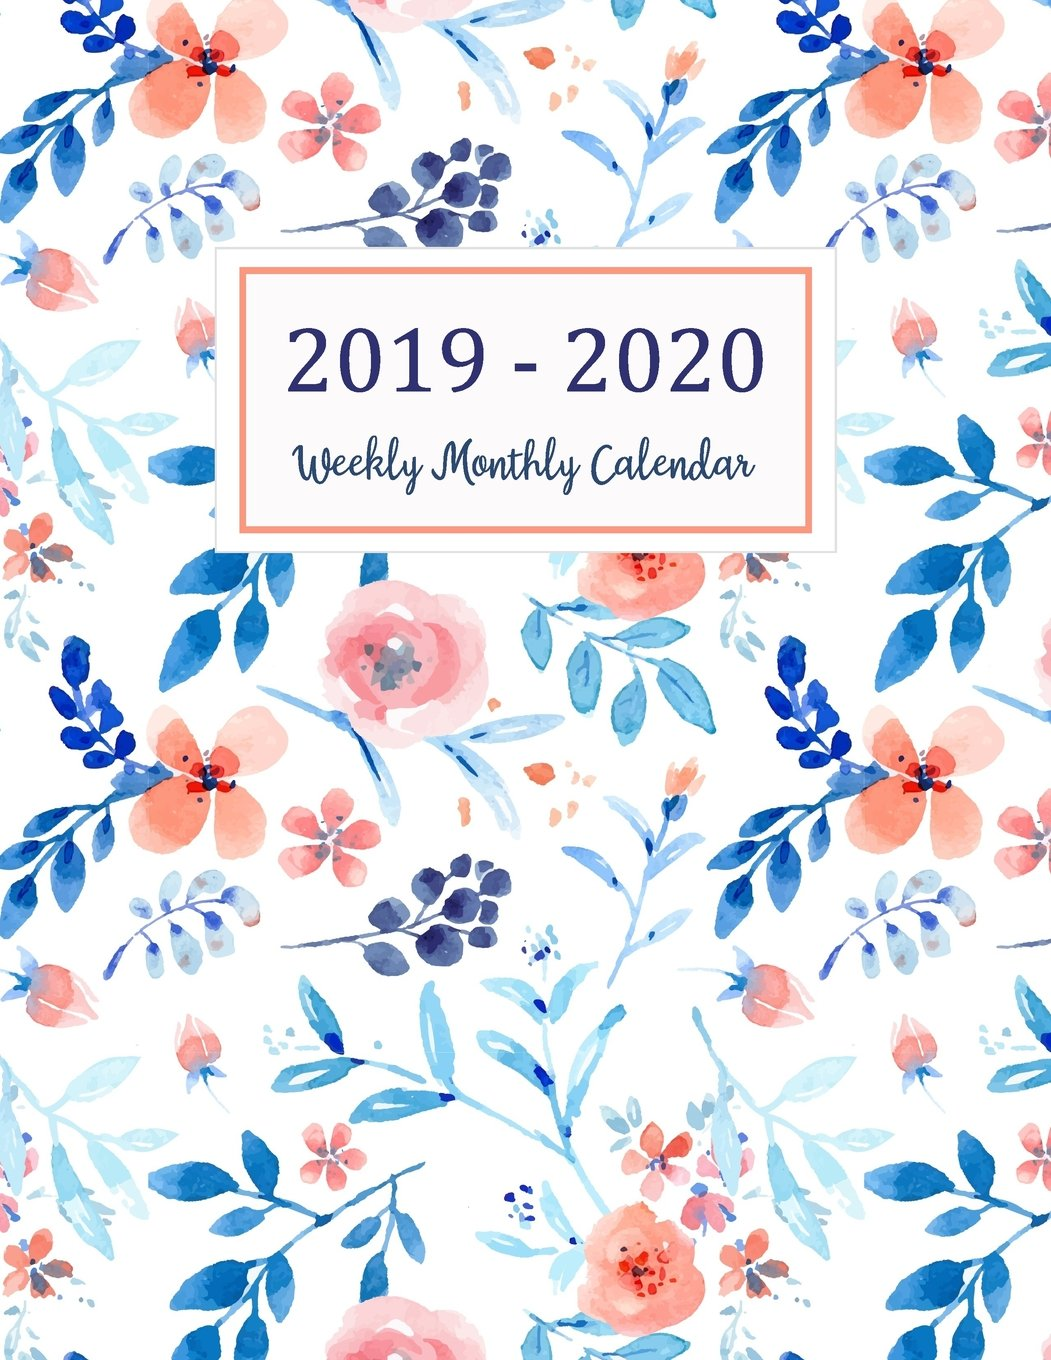 Monthly Calendar Planner 2020 2019 2020 Weekly Monthly Calendar: Two Years   Daily Weekly